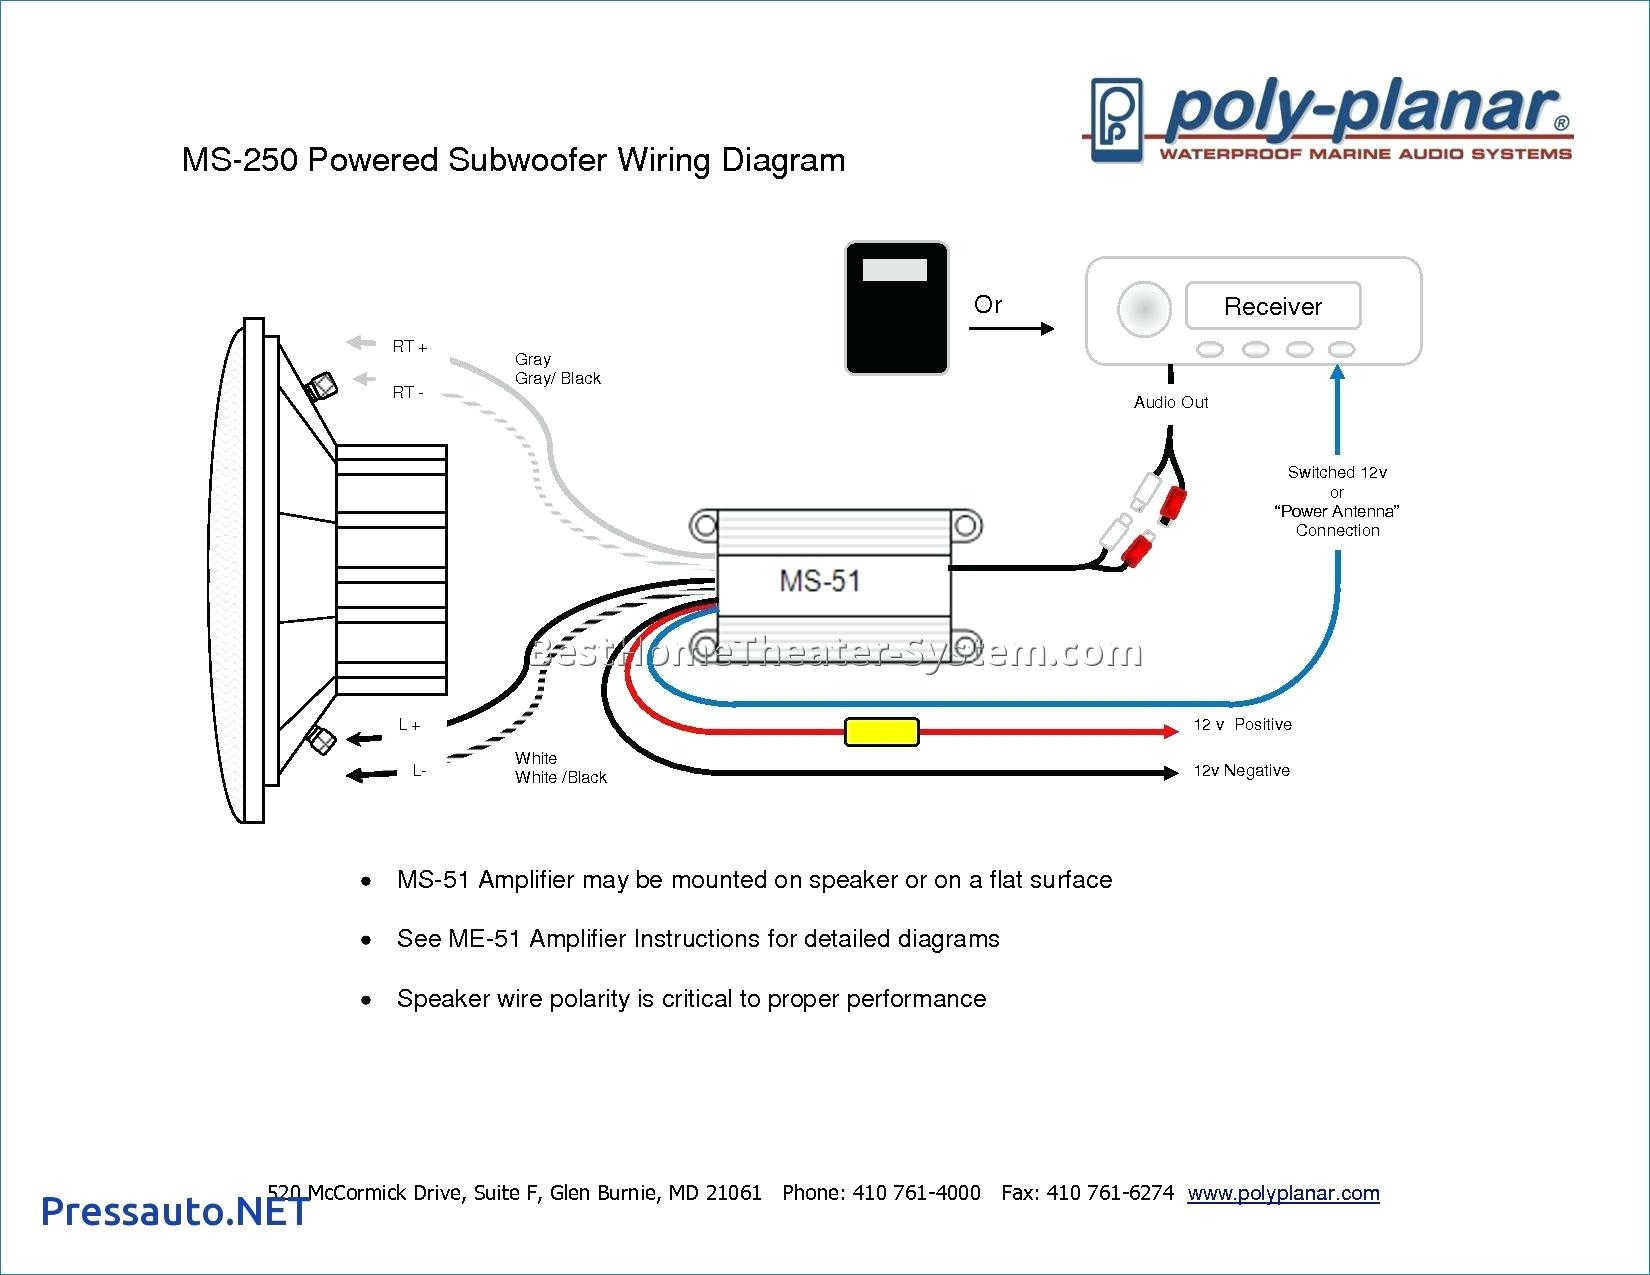 4 Channel Amp Wiring Diagram | Wirings Diagram on audio capacitor diagrams, car audio install diagrams, electrical connections diagrams, pioneer car radio diagrams, subwoofer dimensions, subwoofer drawings, subwoofer installation, nitrous system diagrams, subwoofer lights, subwoofer assembly, kicker box diagrams, crutchfield capacitor diagrams, speaker crossovers circuit diagrams, home theater hook up diagrams, hdmi connections diagrams, subwoofer input, subwoofer home,